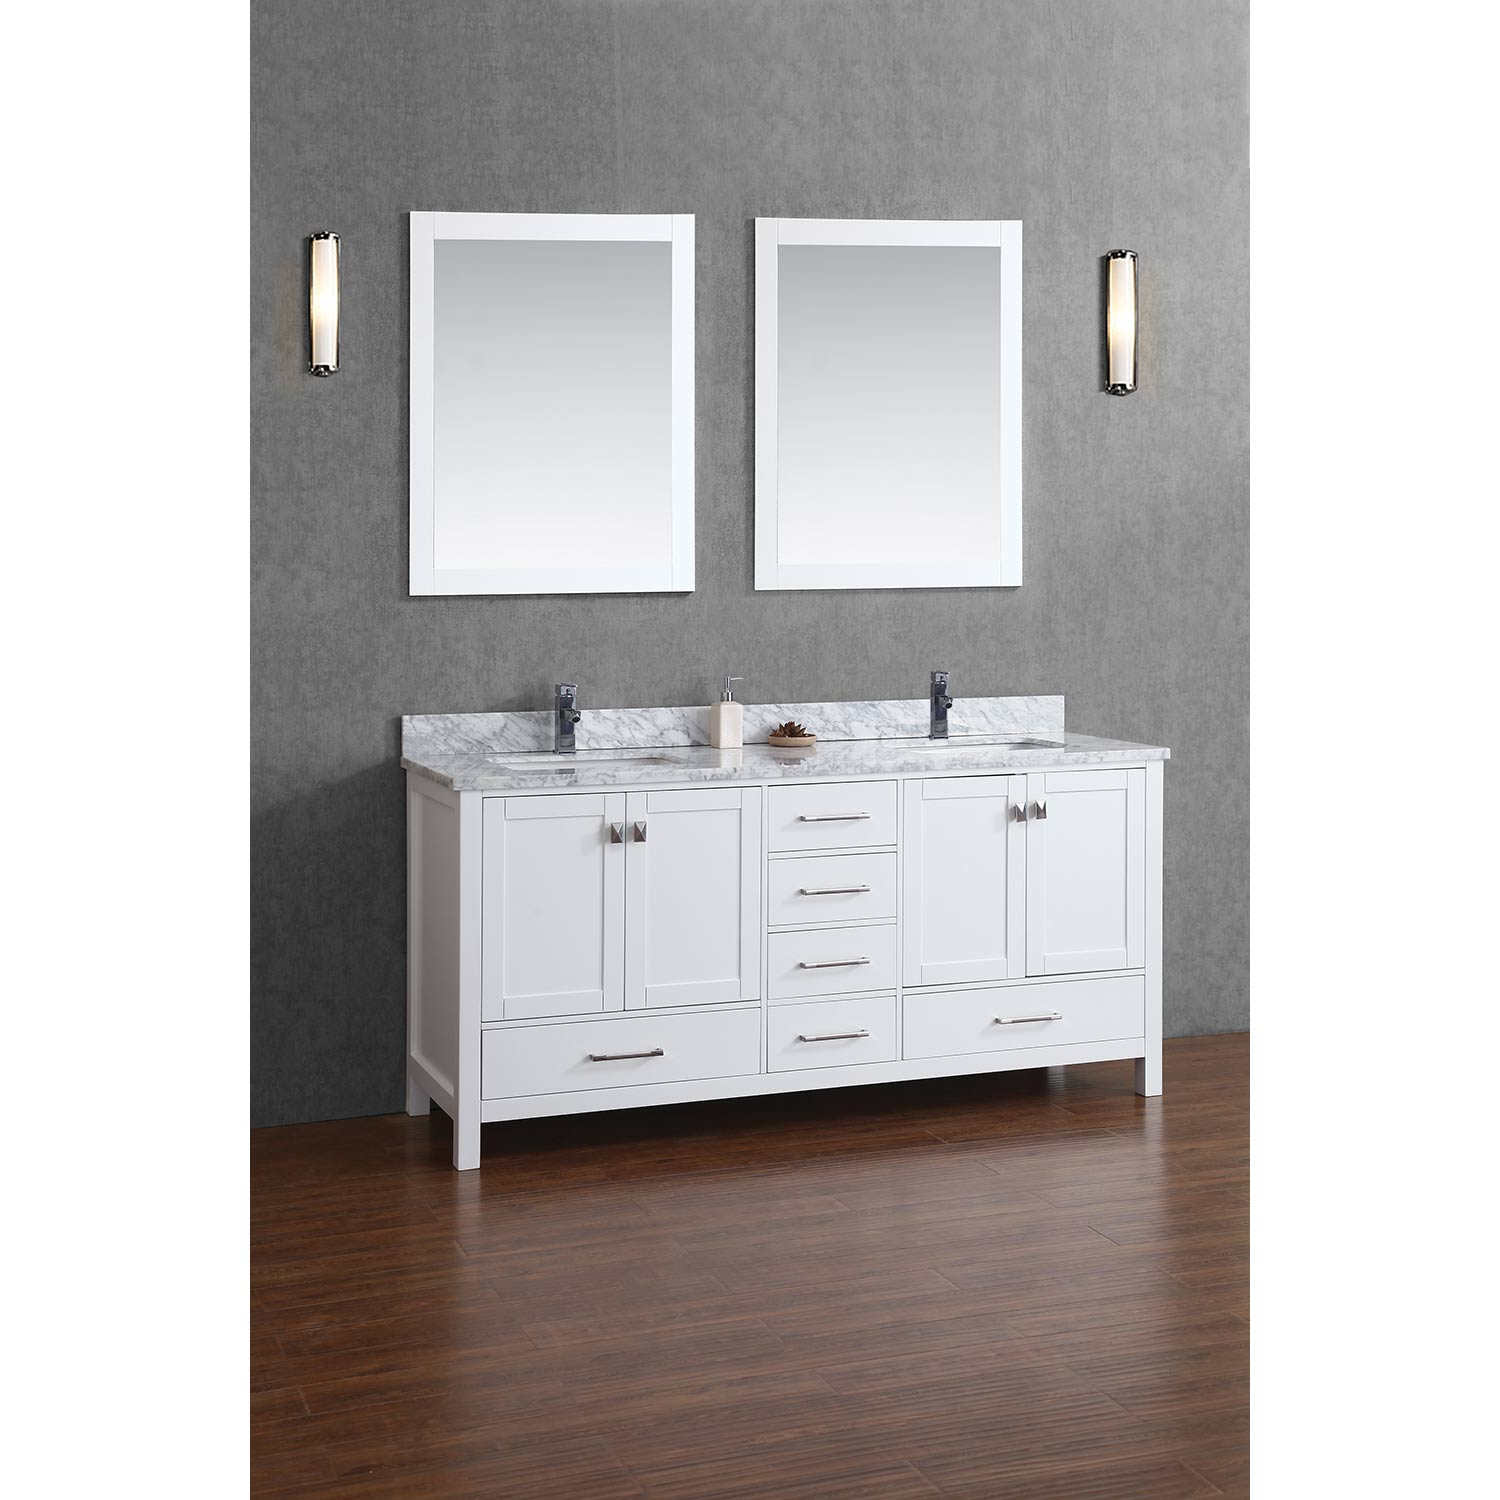 for lp oak bathroom undermount l shop cabinet hardware signature wood vanity sink toby solid